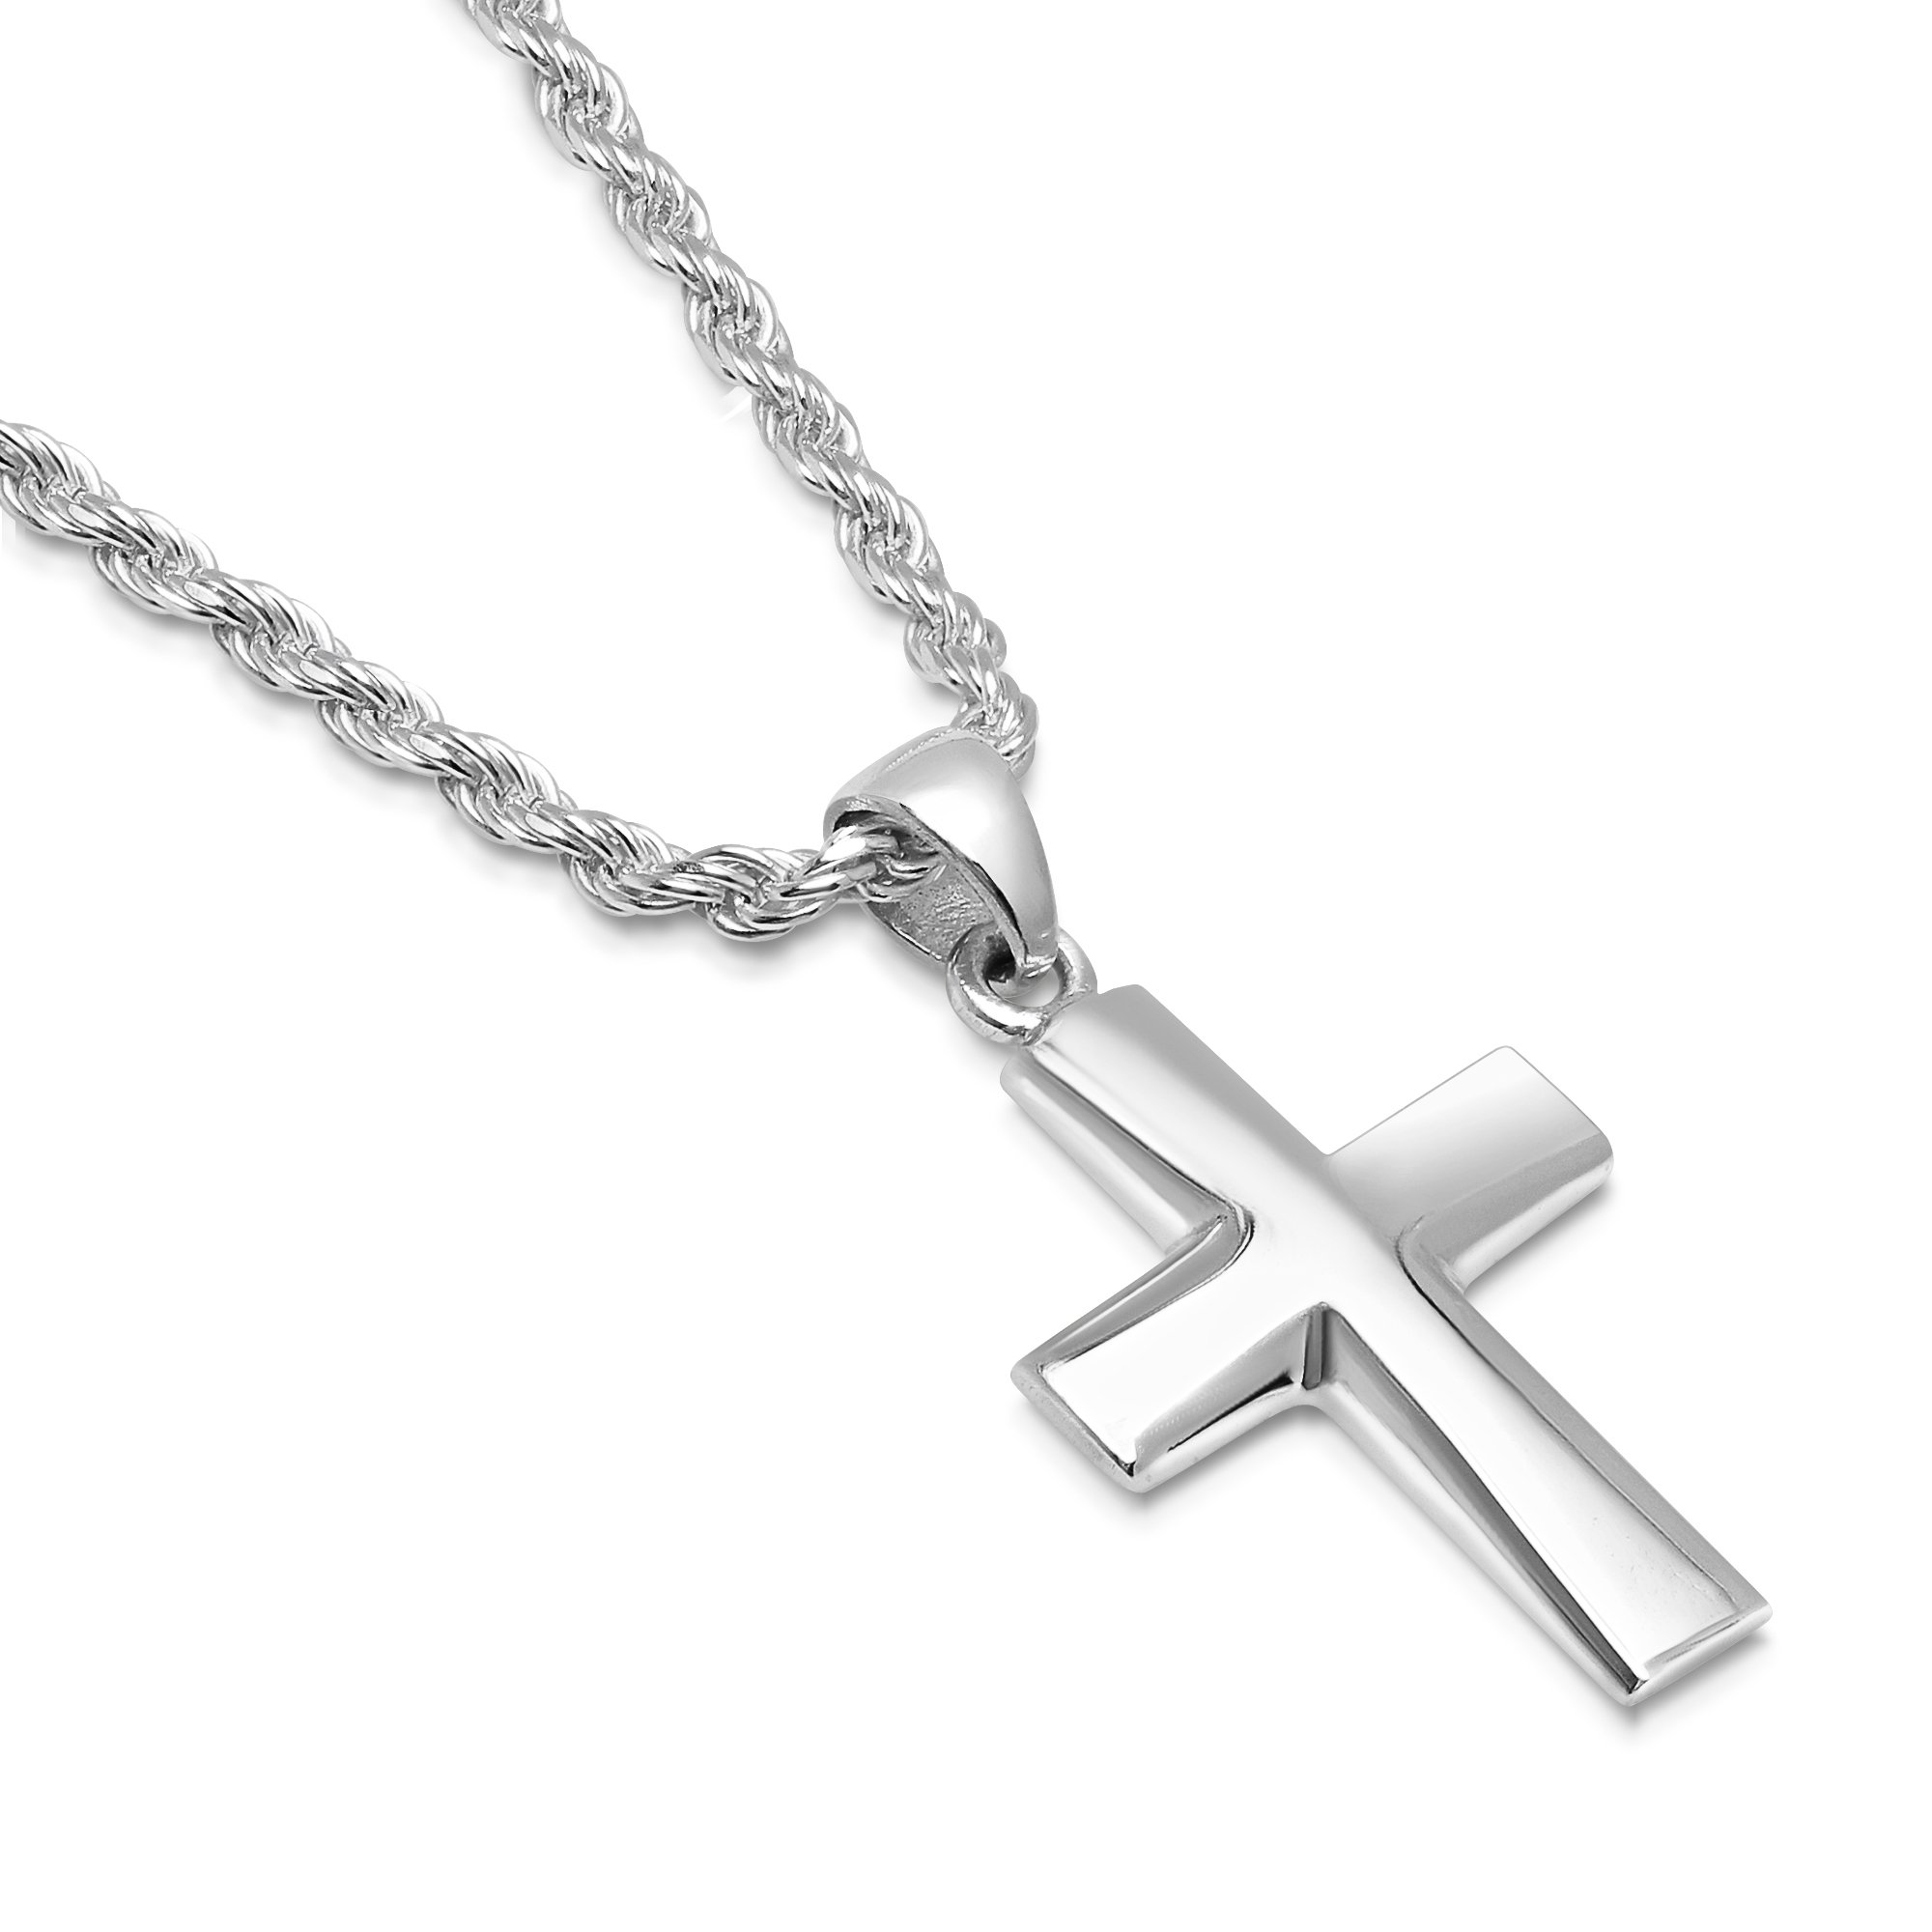 Sterling Silver Plain Cross Pendant Italian Made 2.5mm Rope Chain Necklace - 035 2.5mm - 24''